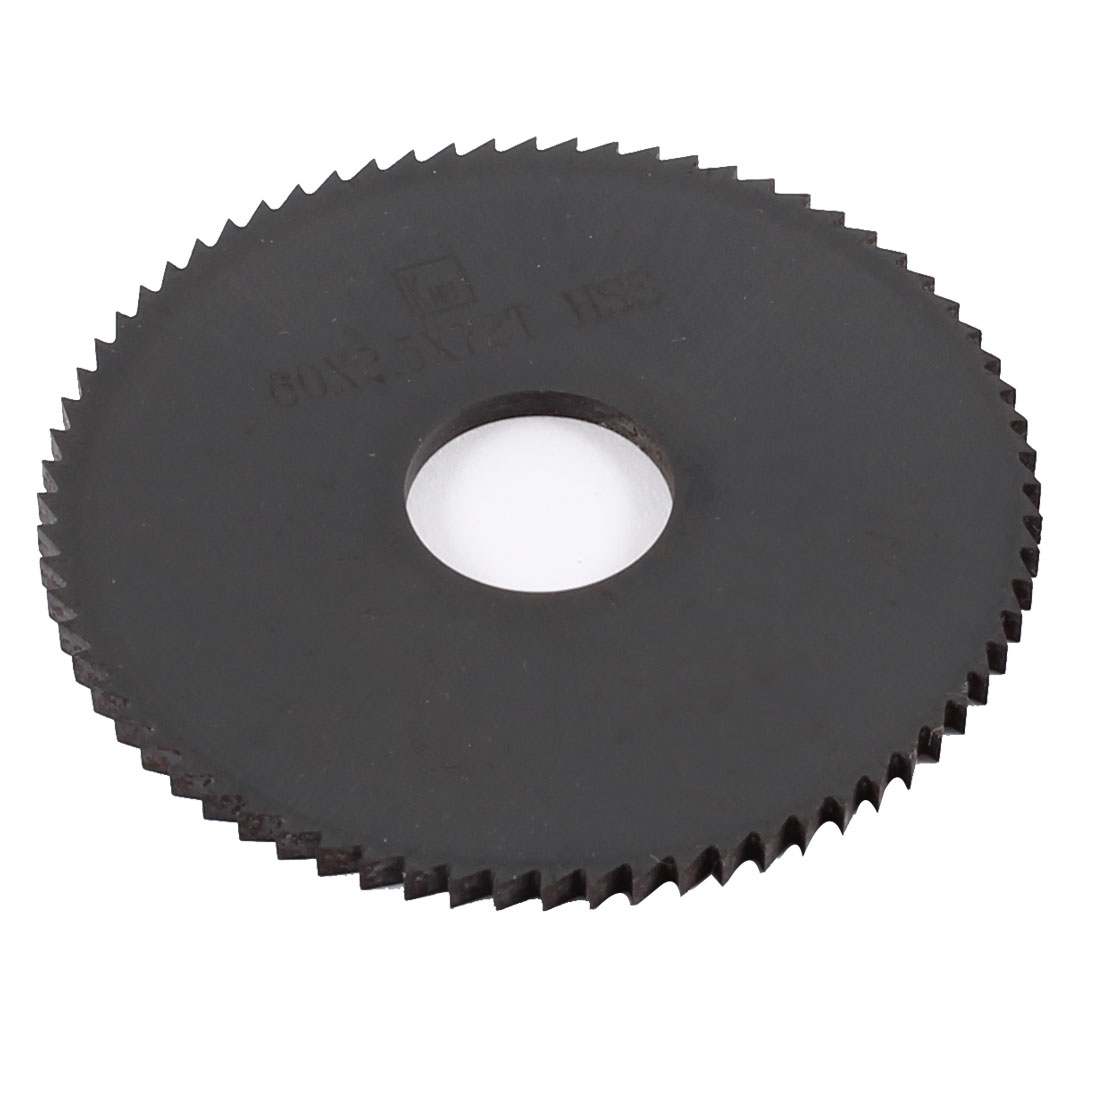 60mm x 2.5mm x 16mm Milling Cutter HSS 72T Slitting Saw Blade Black